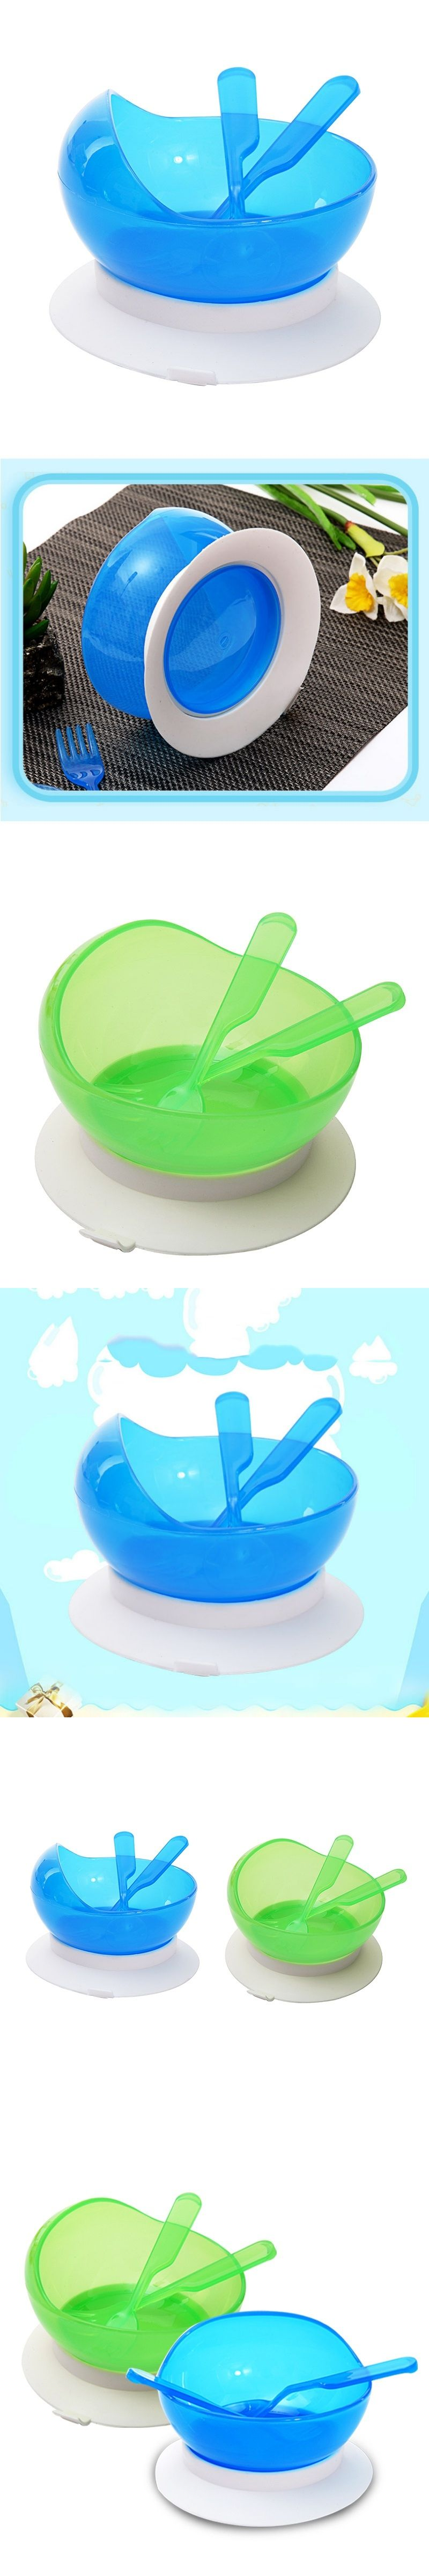 1set Baby Tableware Baby Learn Dishes With Suction Cup Help the Bowl